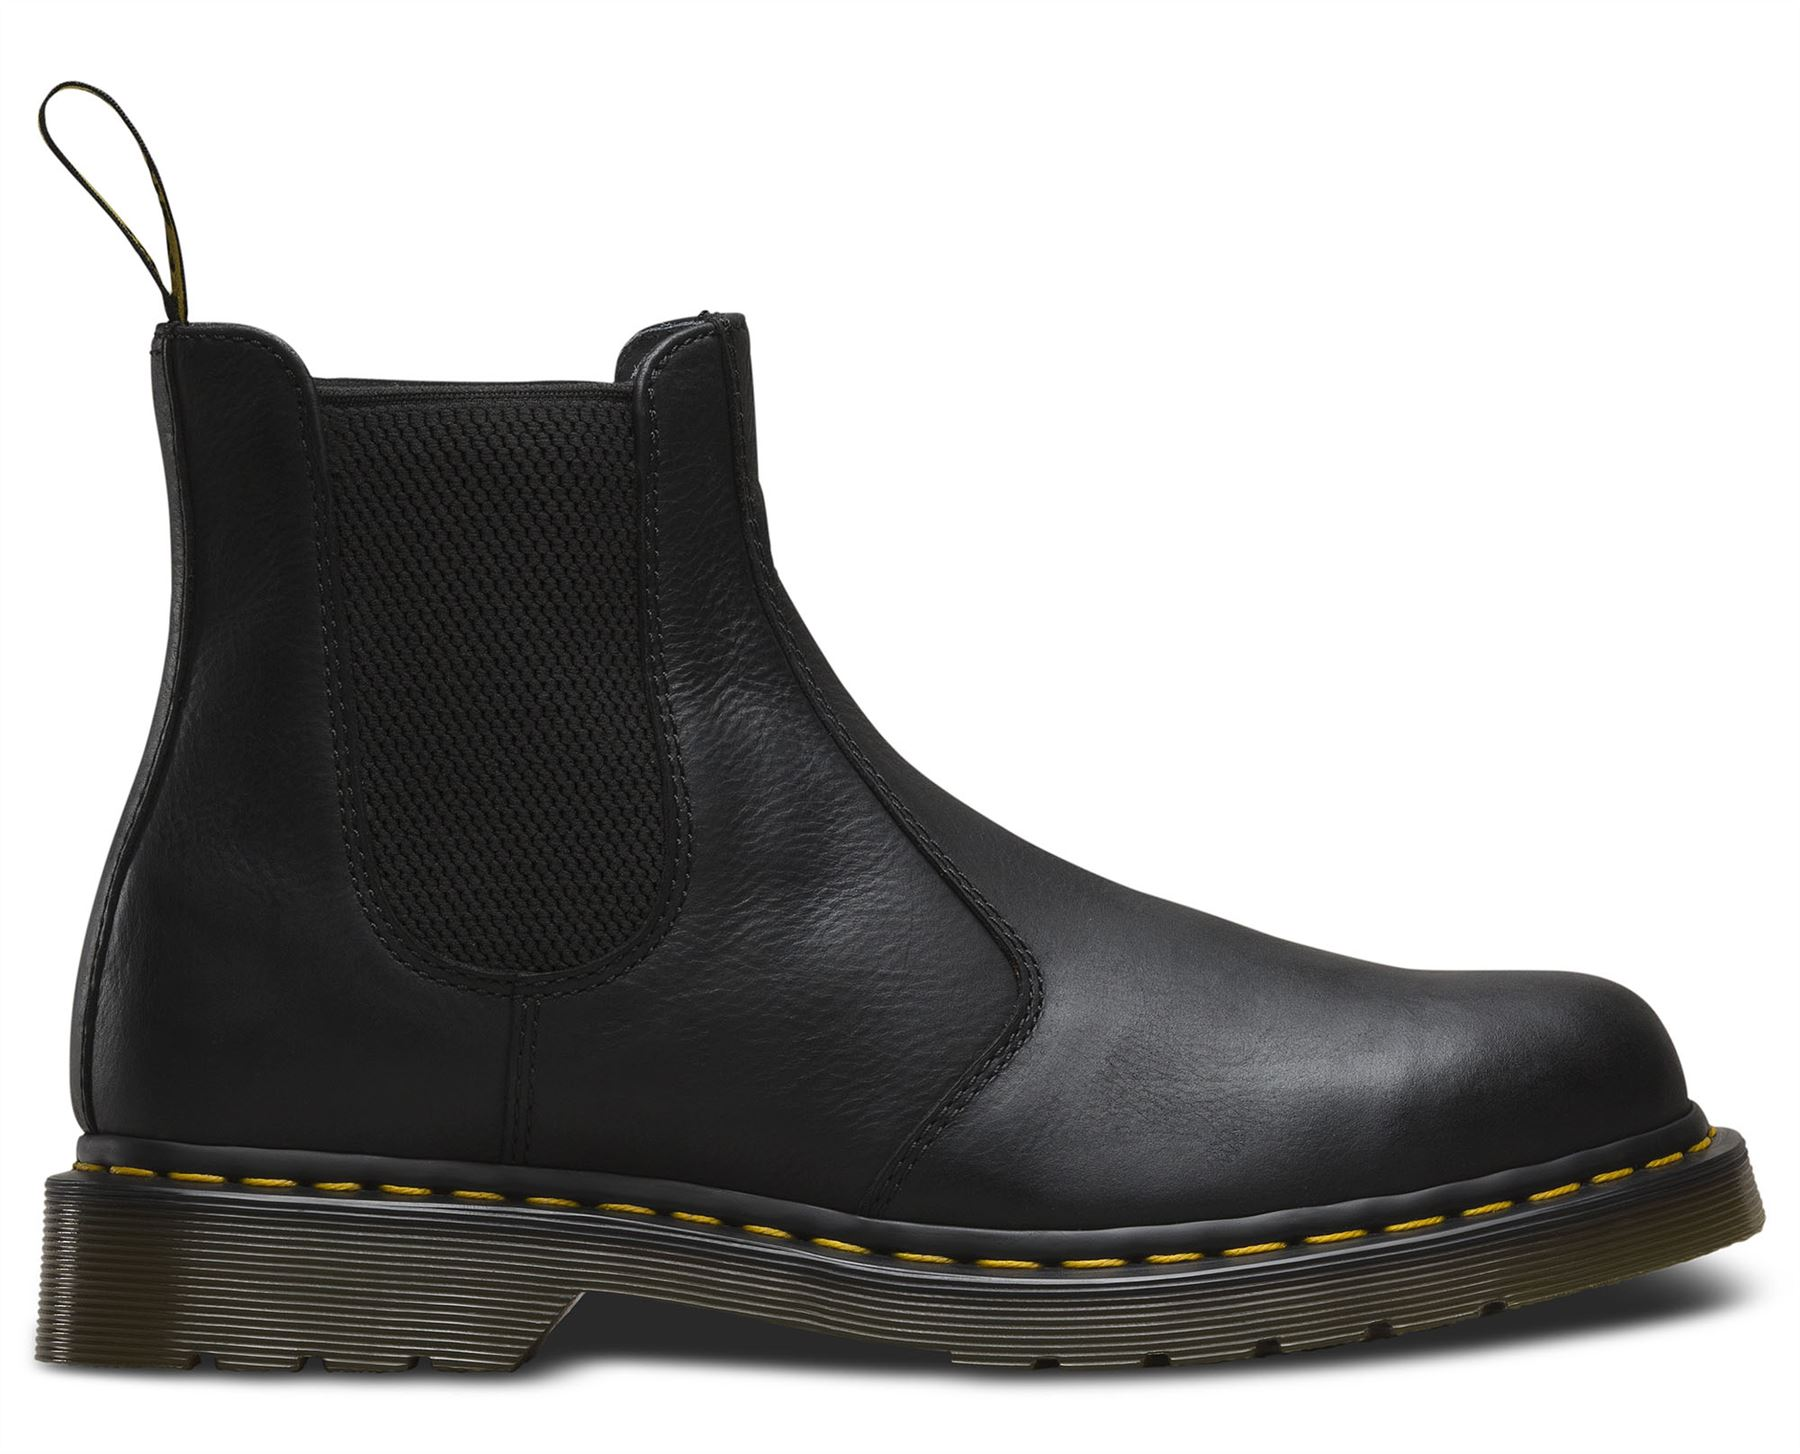 dr martens mens 2976 chelsea dealer premium carpathian leather ankle doc boots ebay. Black Bedroom Furniture Sets. Home Design Ideas